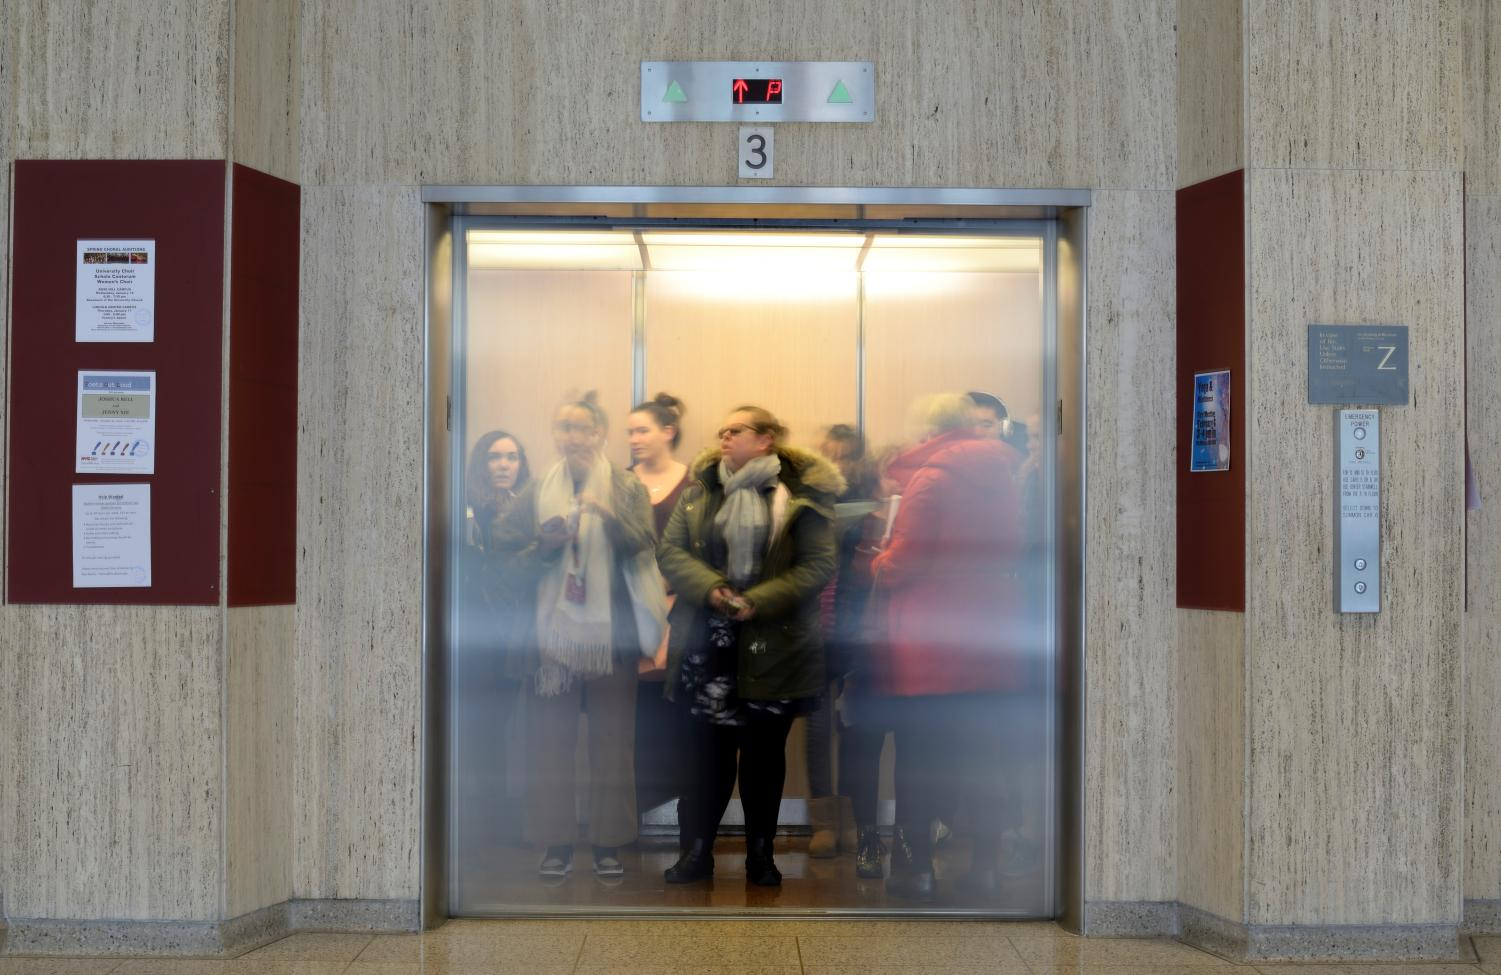 This elevator phenomenon is only known to occur in McMahon Hall.